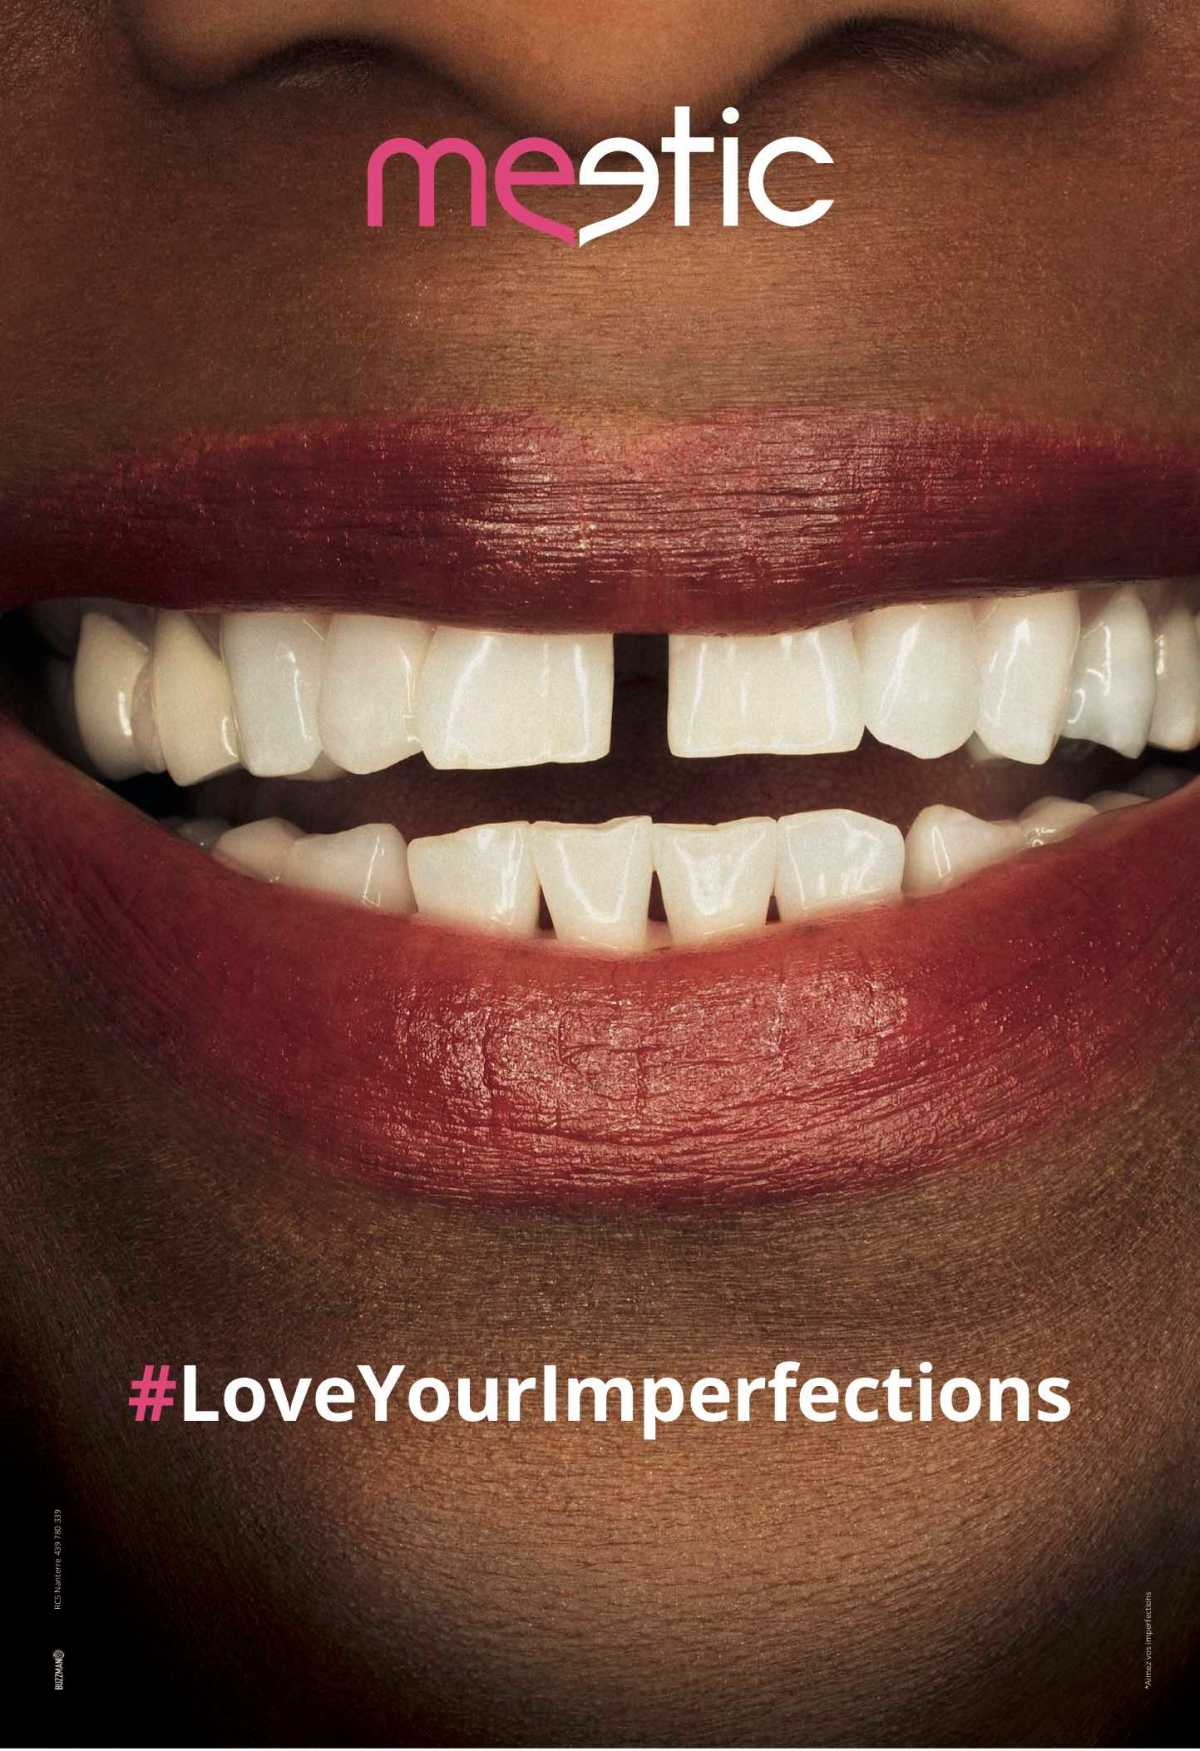 meetic-loveyourimperfections-jupdlc-2